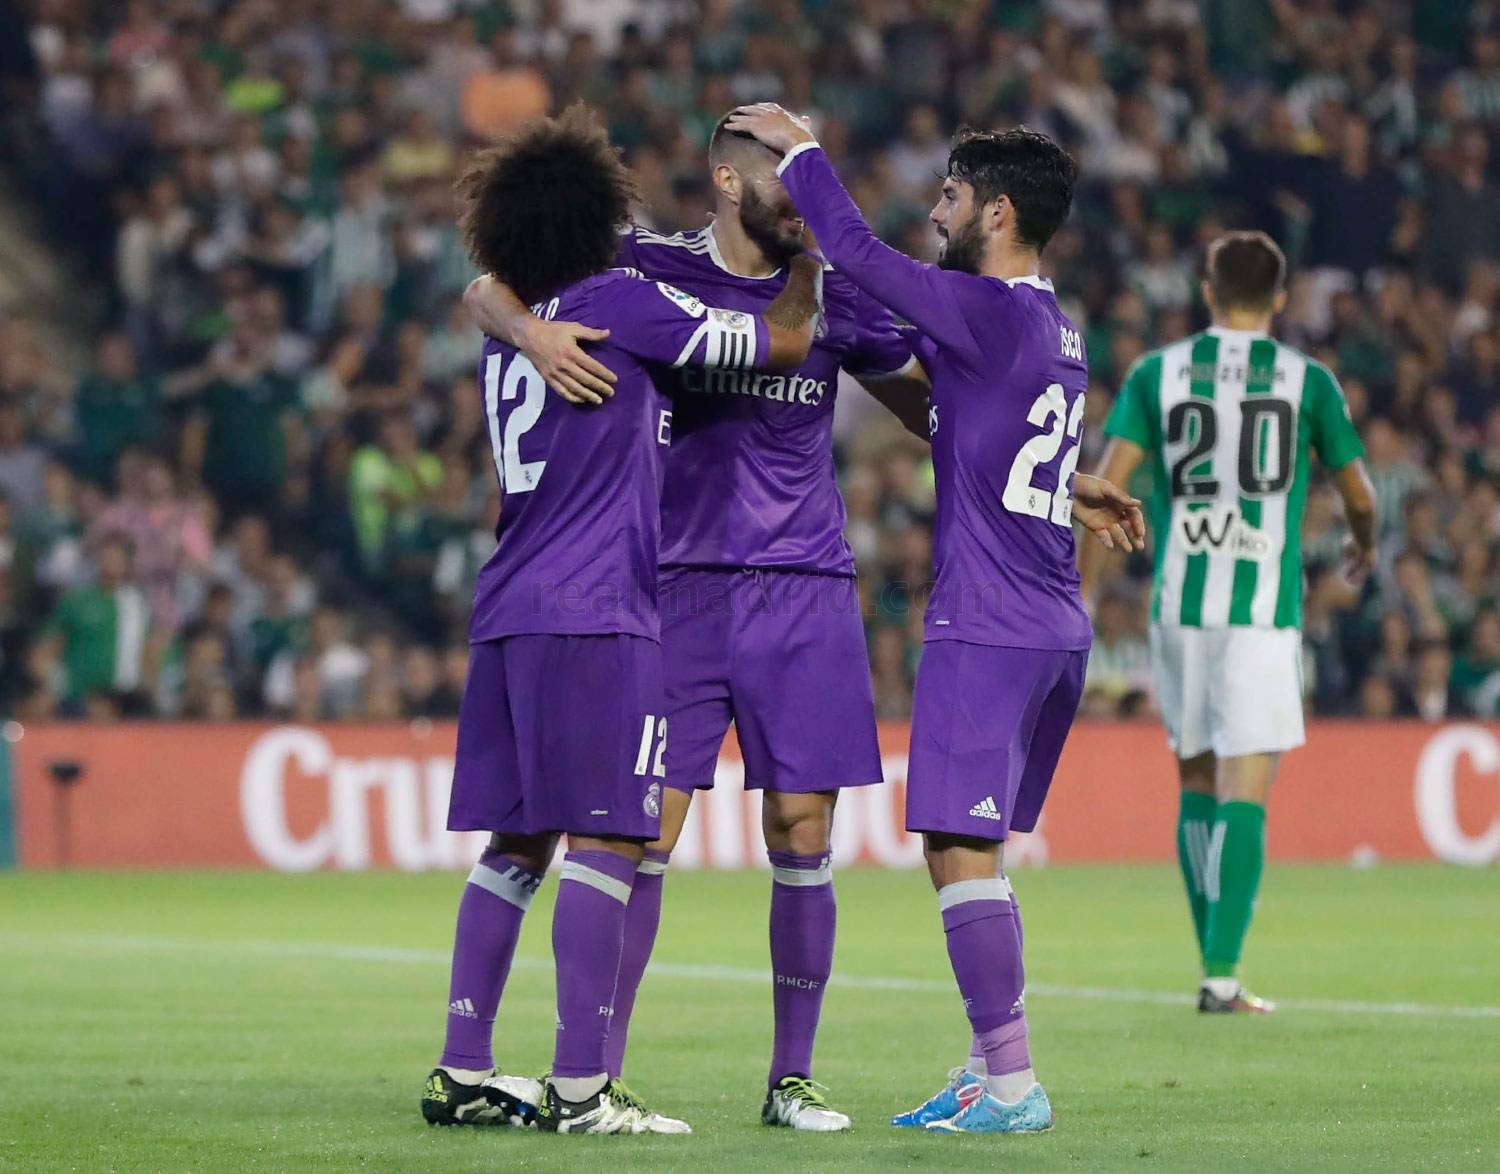 Betis - Real Madrid